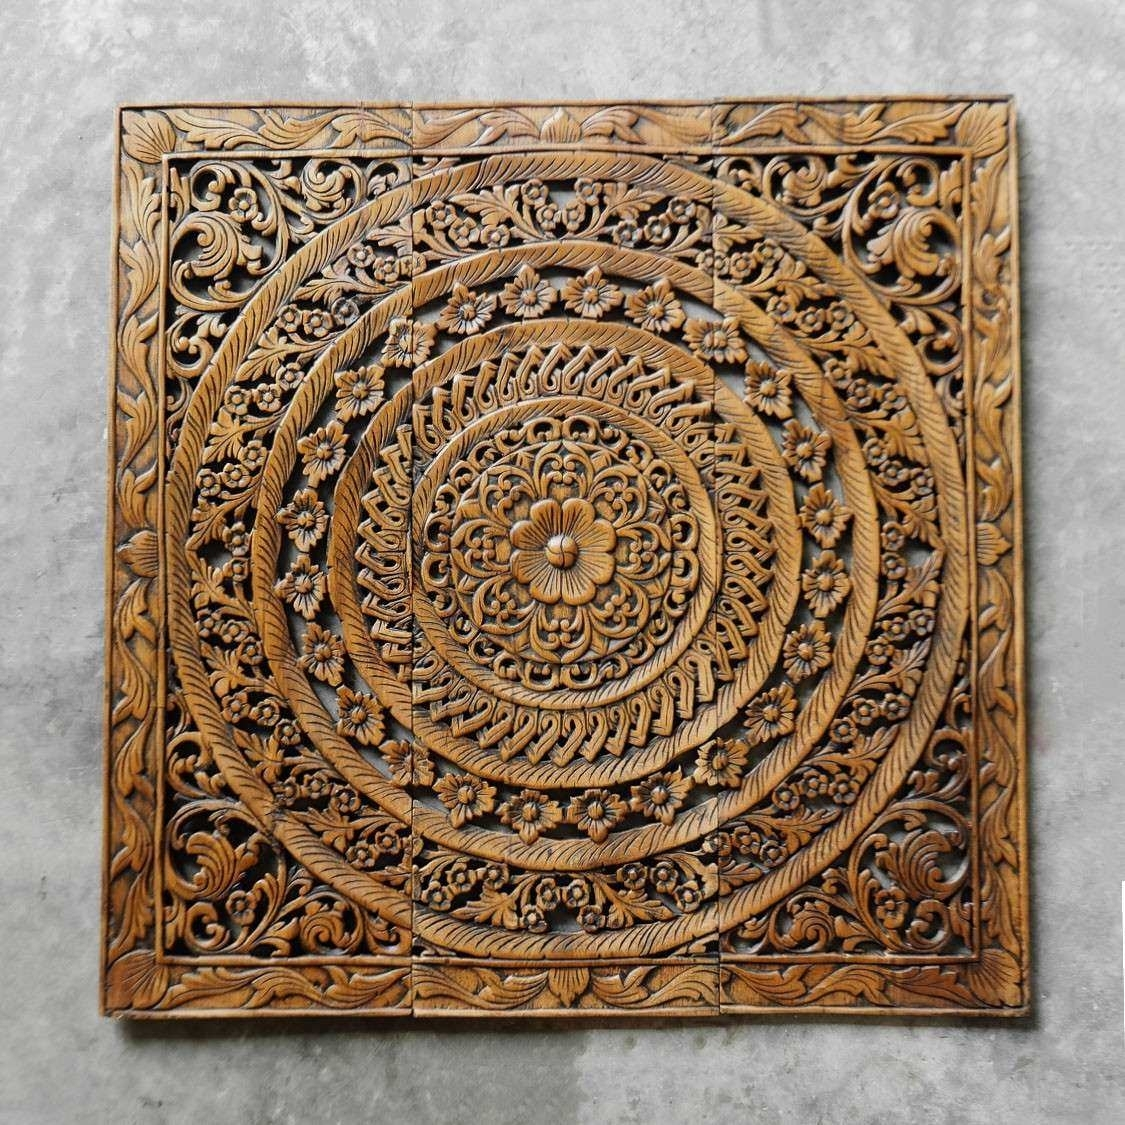 Wood Carvings Wall Decor Best Of Moroccan Wall Art | Wall Art Ideas Intended For Moroccan Wall Art (View 8 of 20)